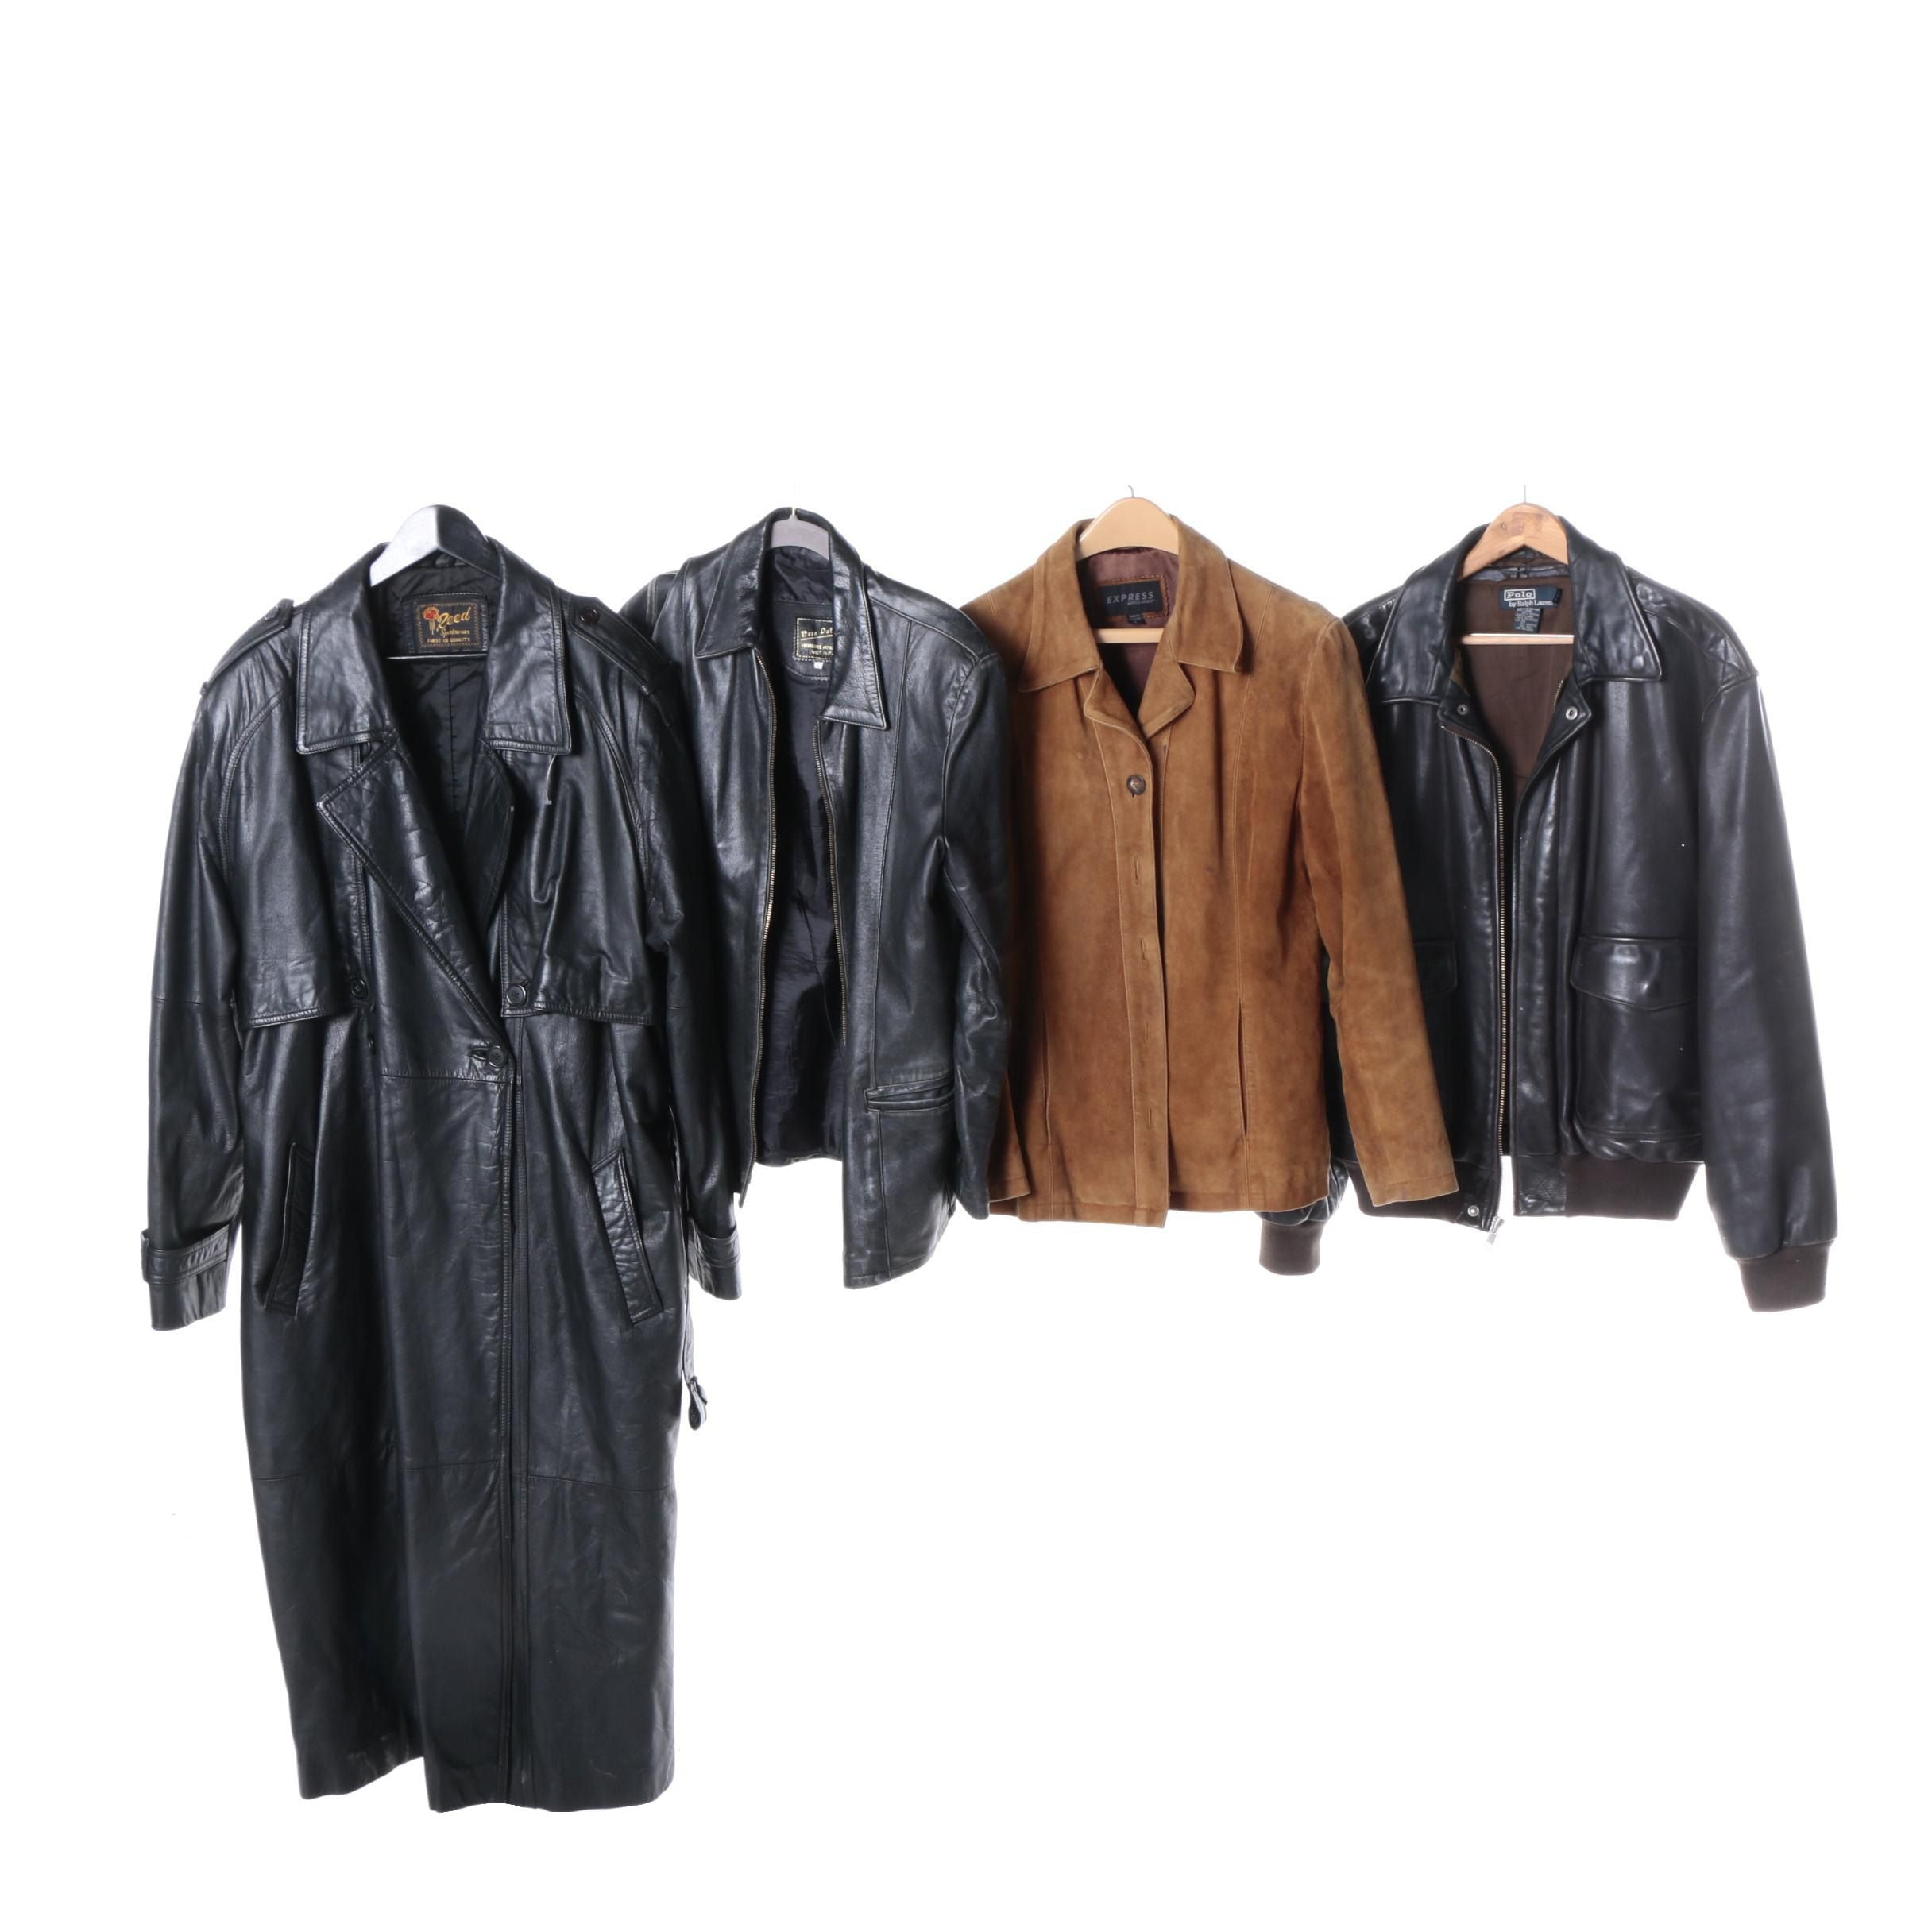 Men's and Women's Vintage Leather Jackets Including Polo by Ralph Lauren